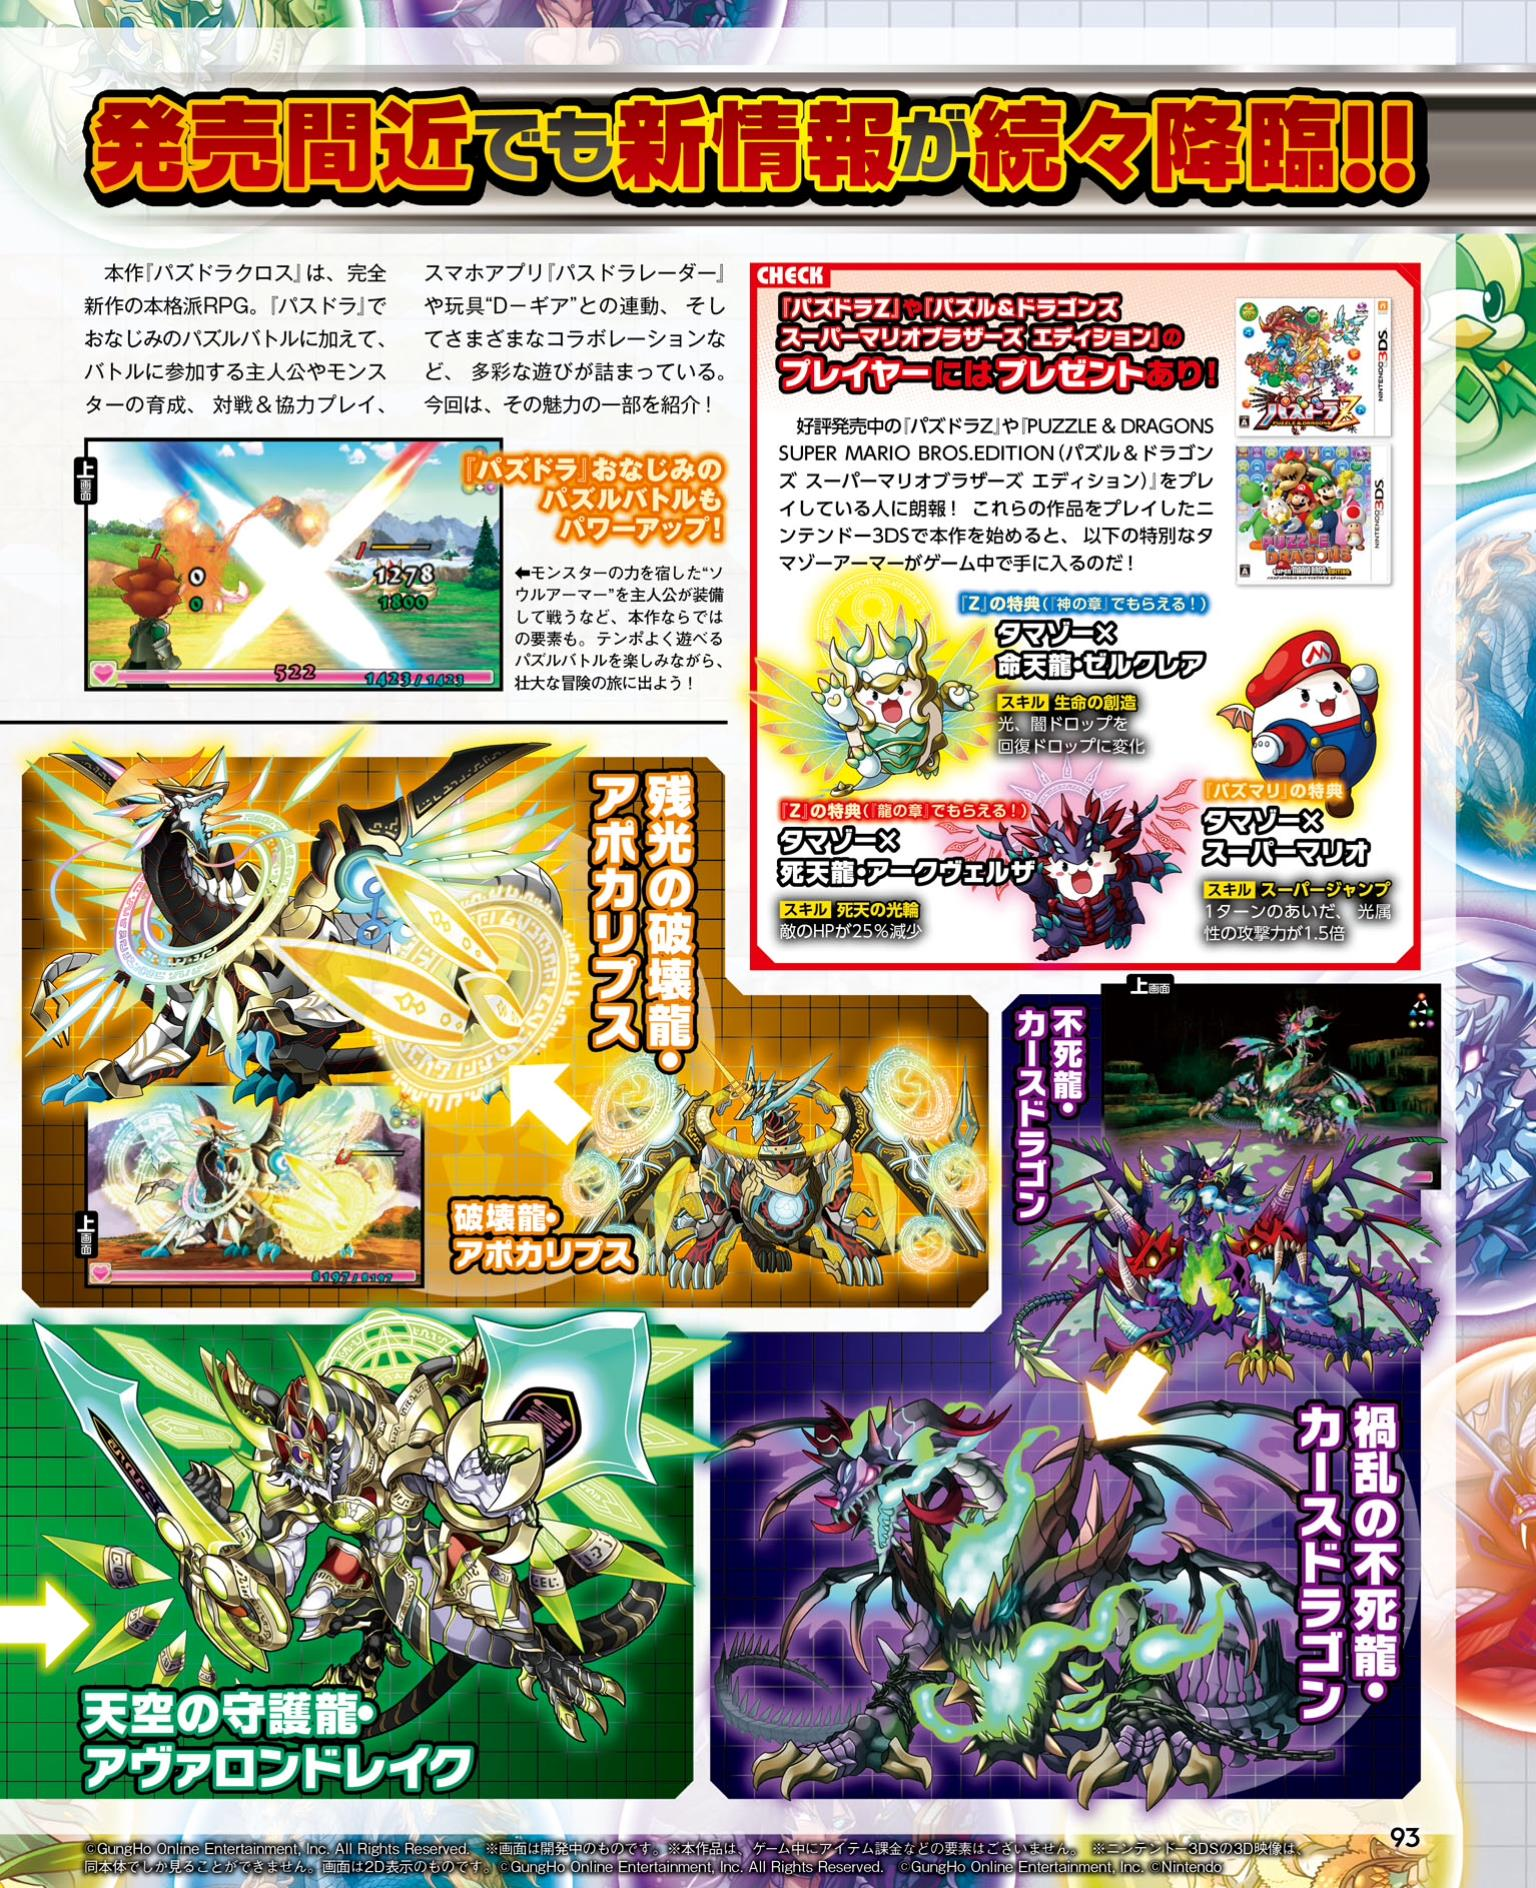 how to delete puzzles and dragons saved game 3ds